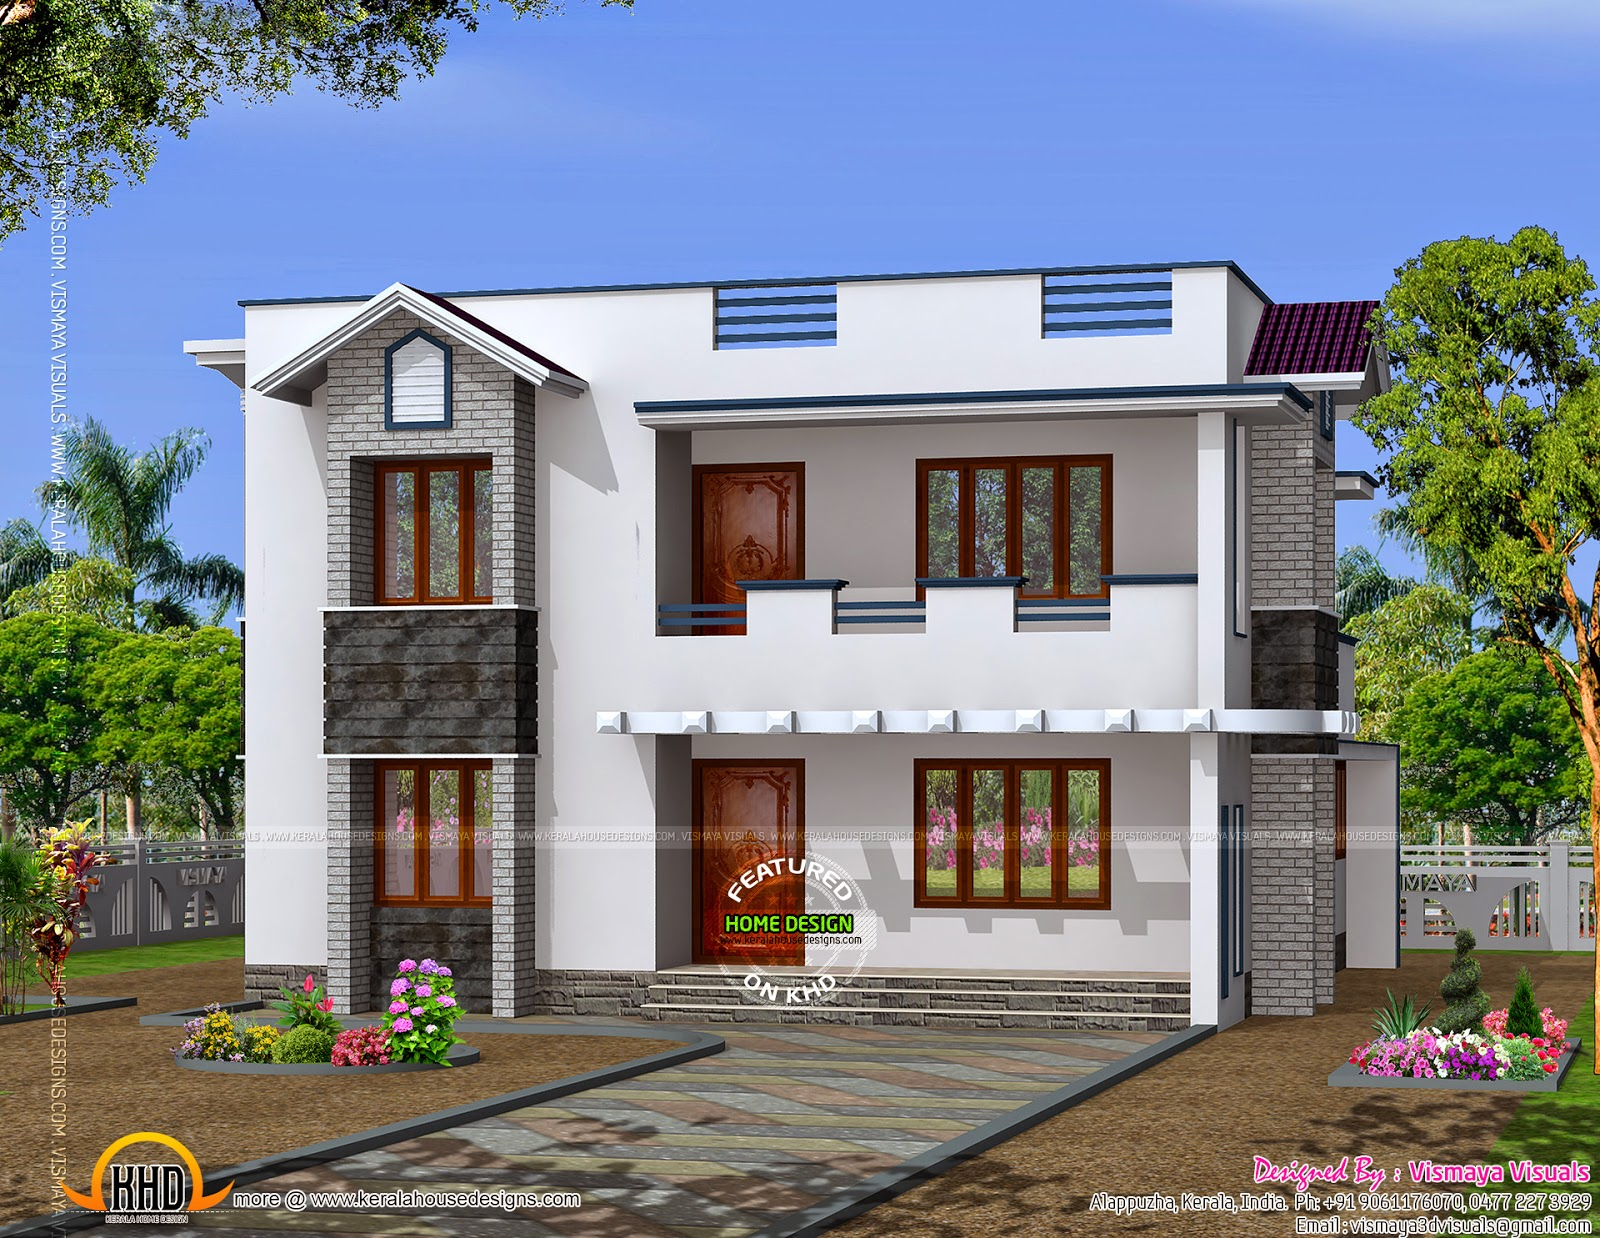 Simple design home kerala home design and floor plans for House and design